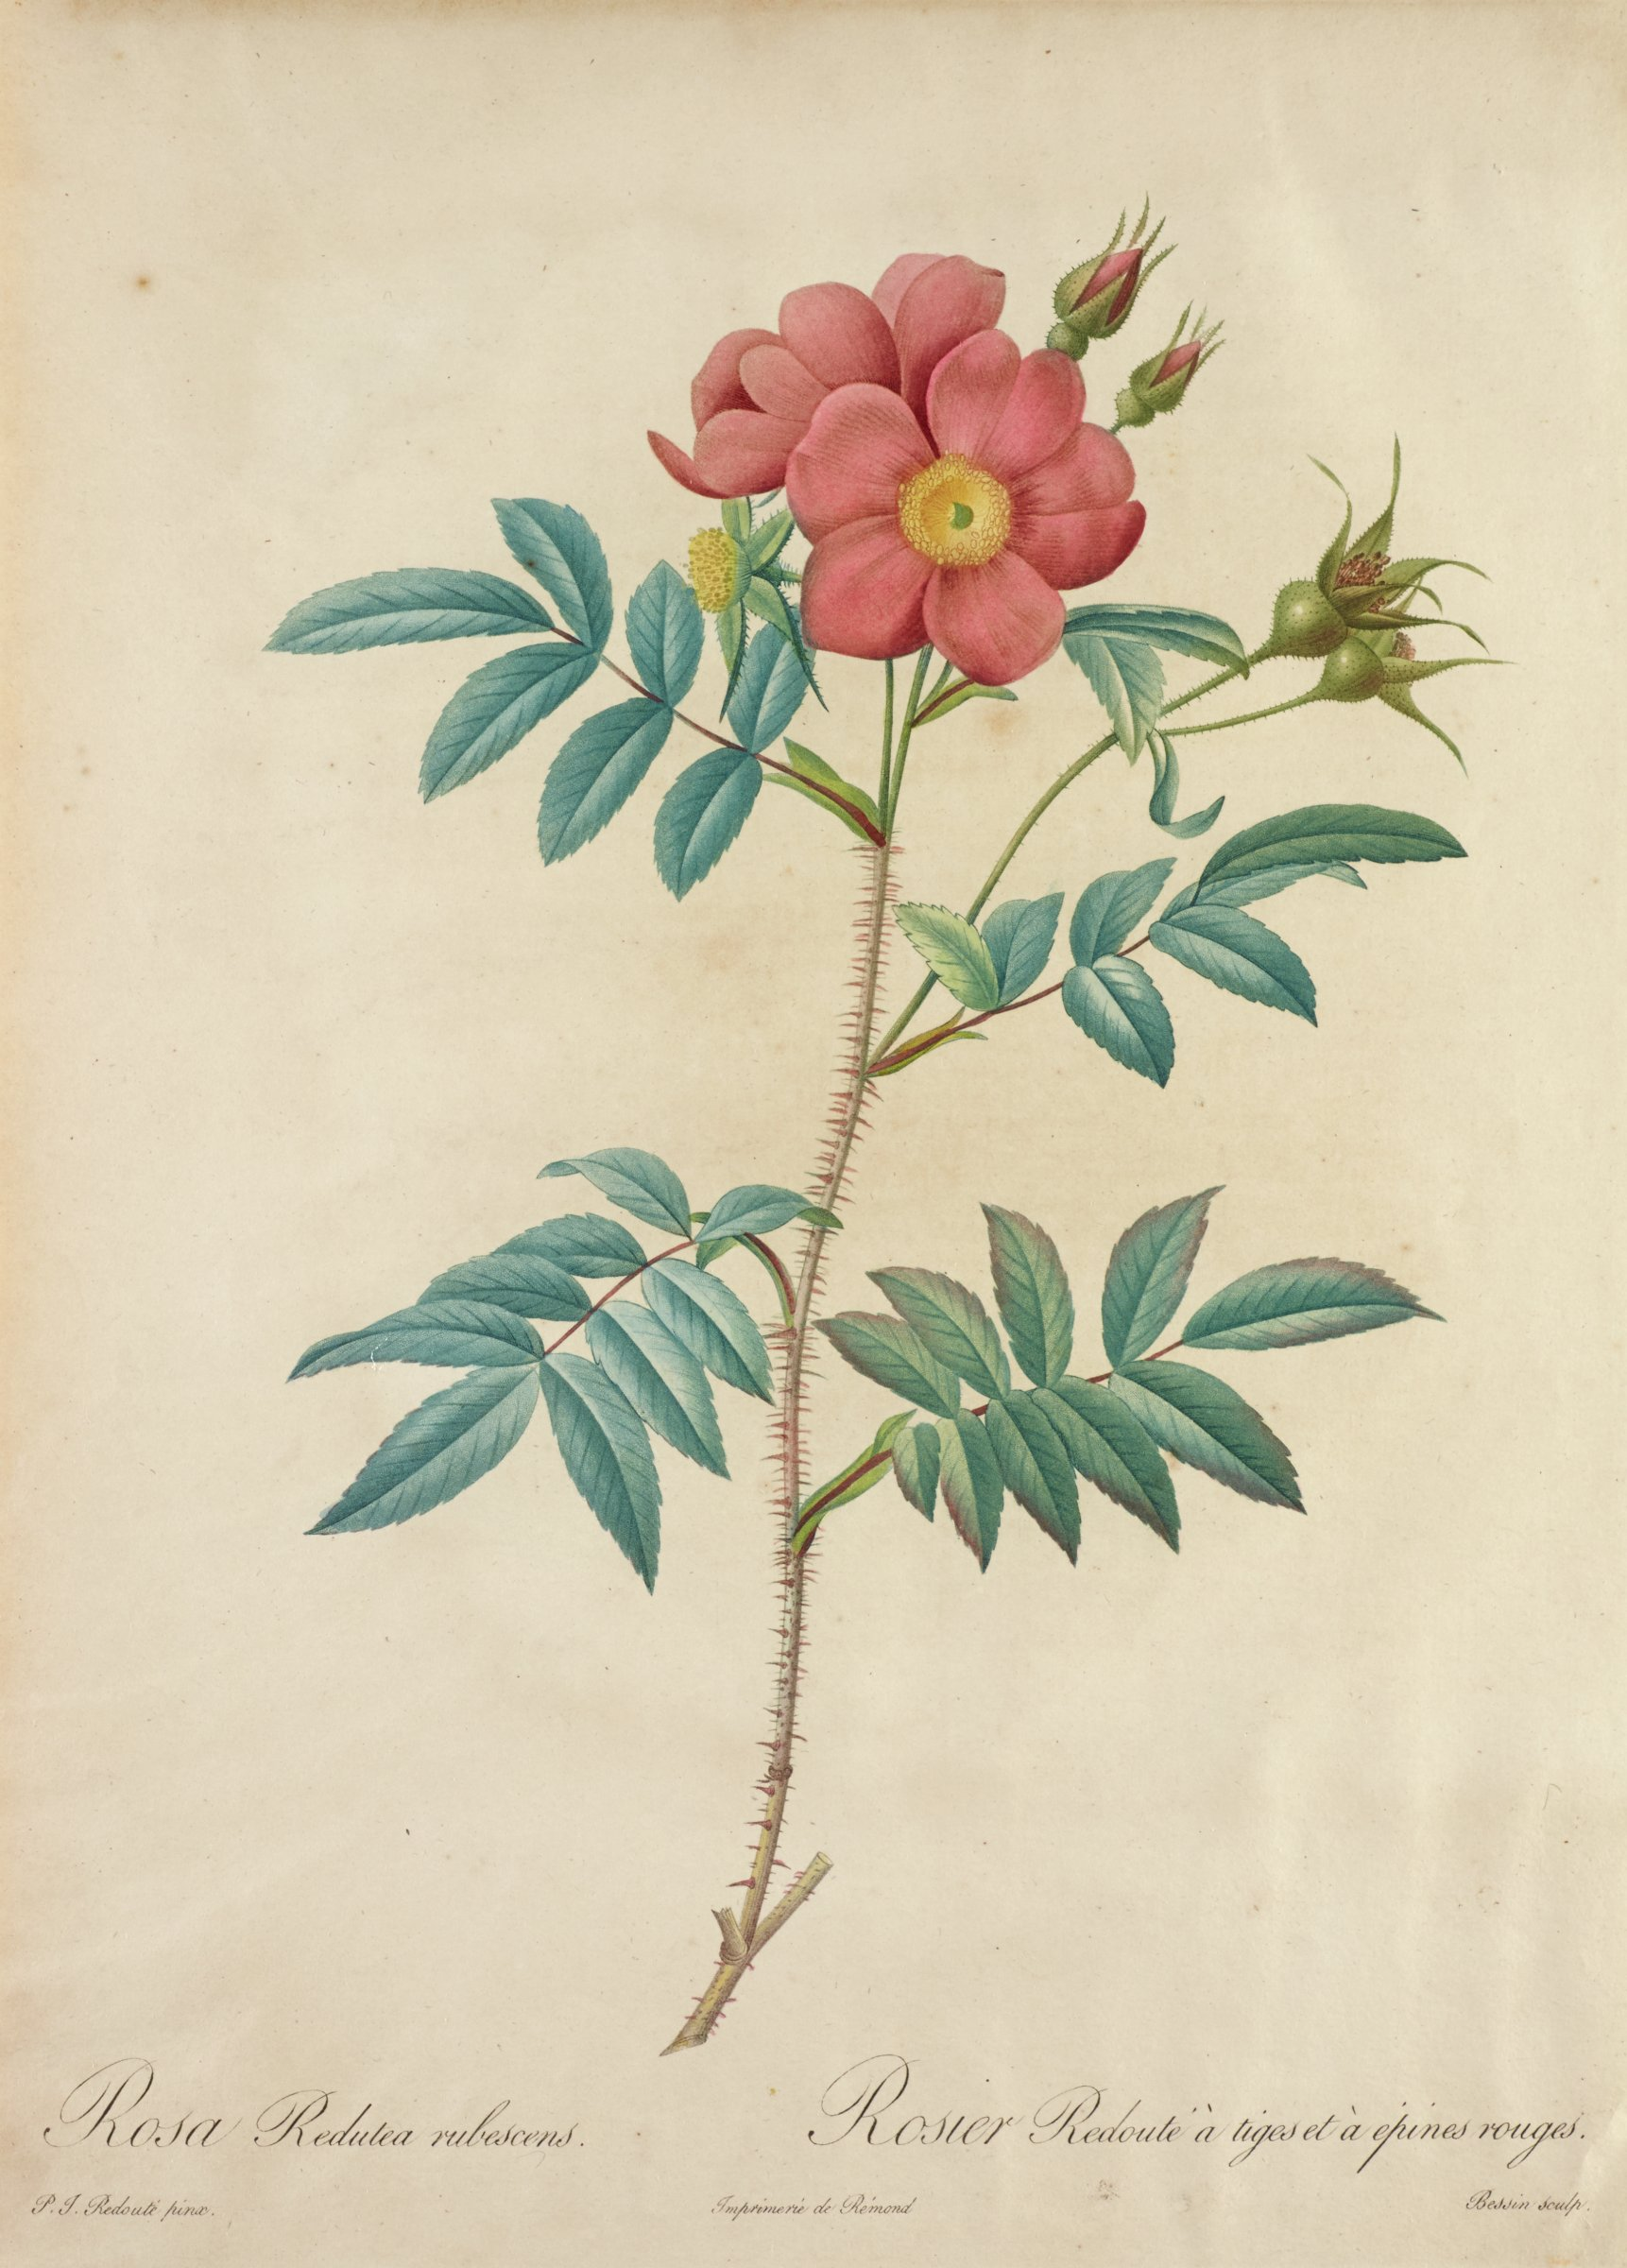 A botanical print depicting two pink flowers in bloom with a yellow center. Several buds grow behind it. The flowers grow from a spikey stem with protruding branches that hold multiple leaves.